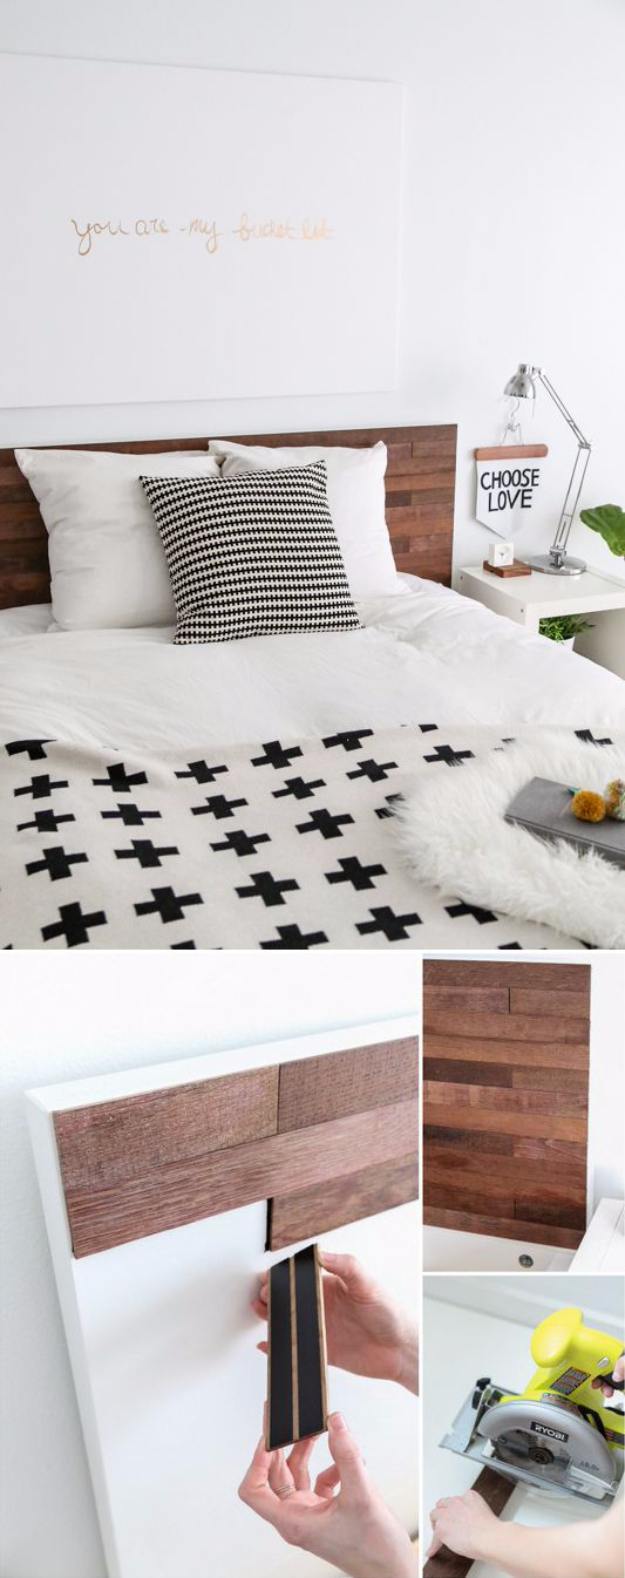 75 more ikea hacks that will blow you away diy joy. Black Bedroom Furniture Sets. Home Design Ideas